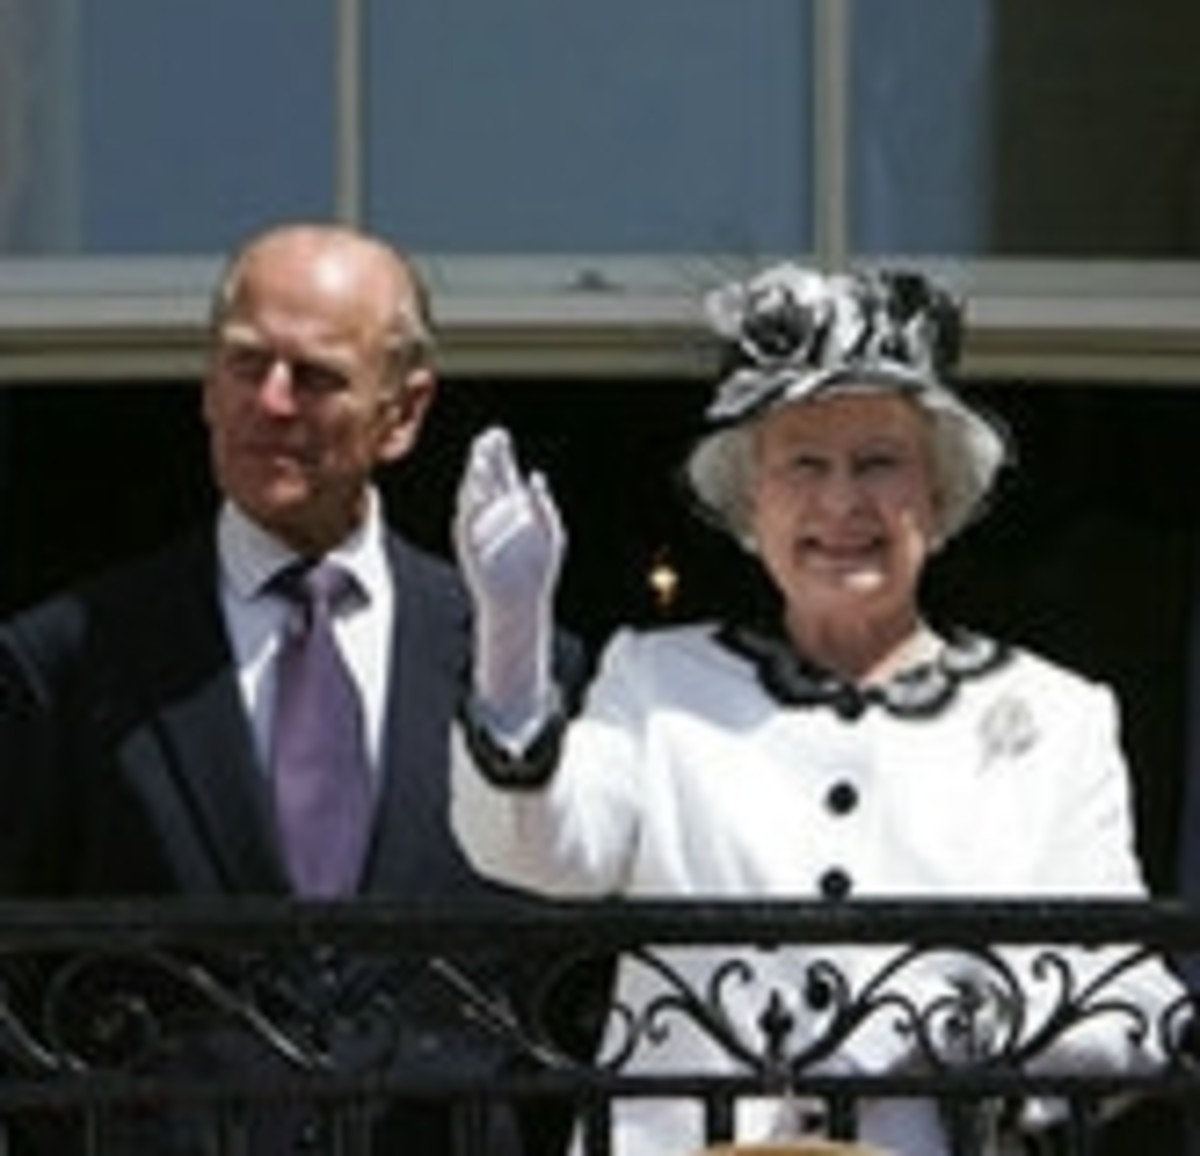 The Queen Elizabeth II Diamond Jubilee Celebrations - June 2012